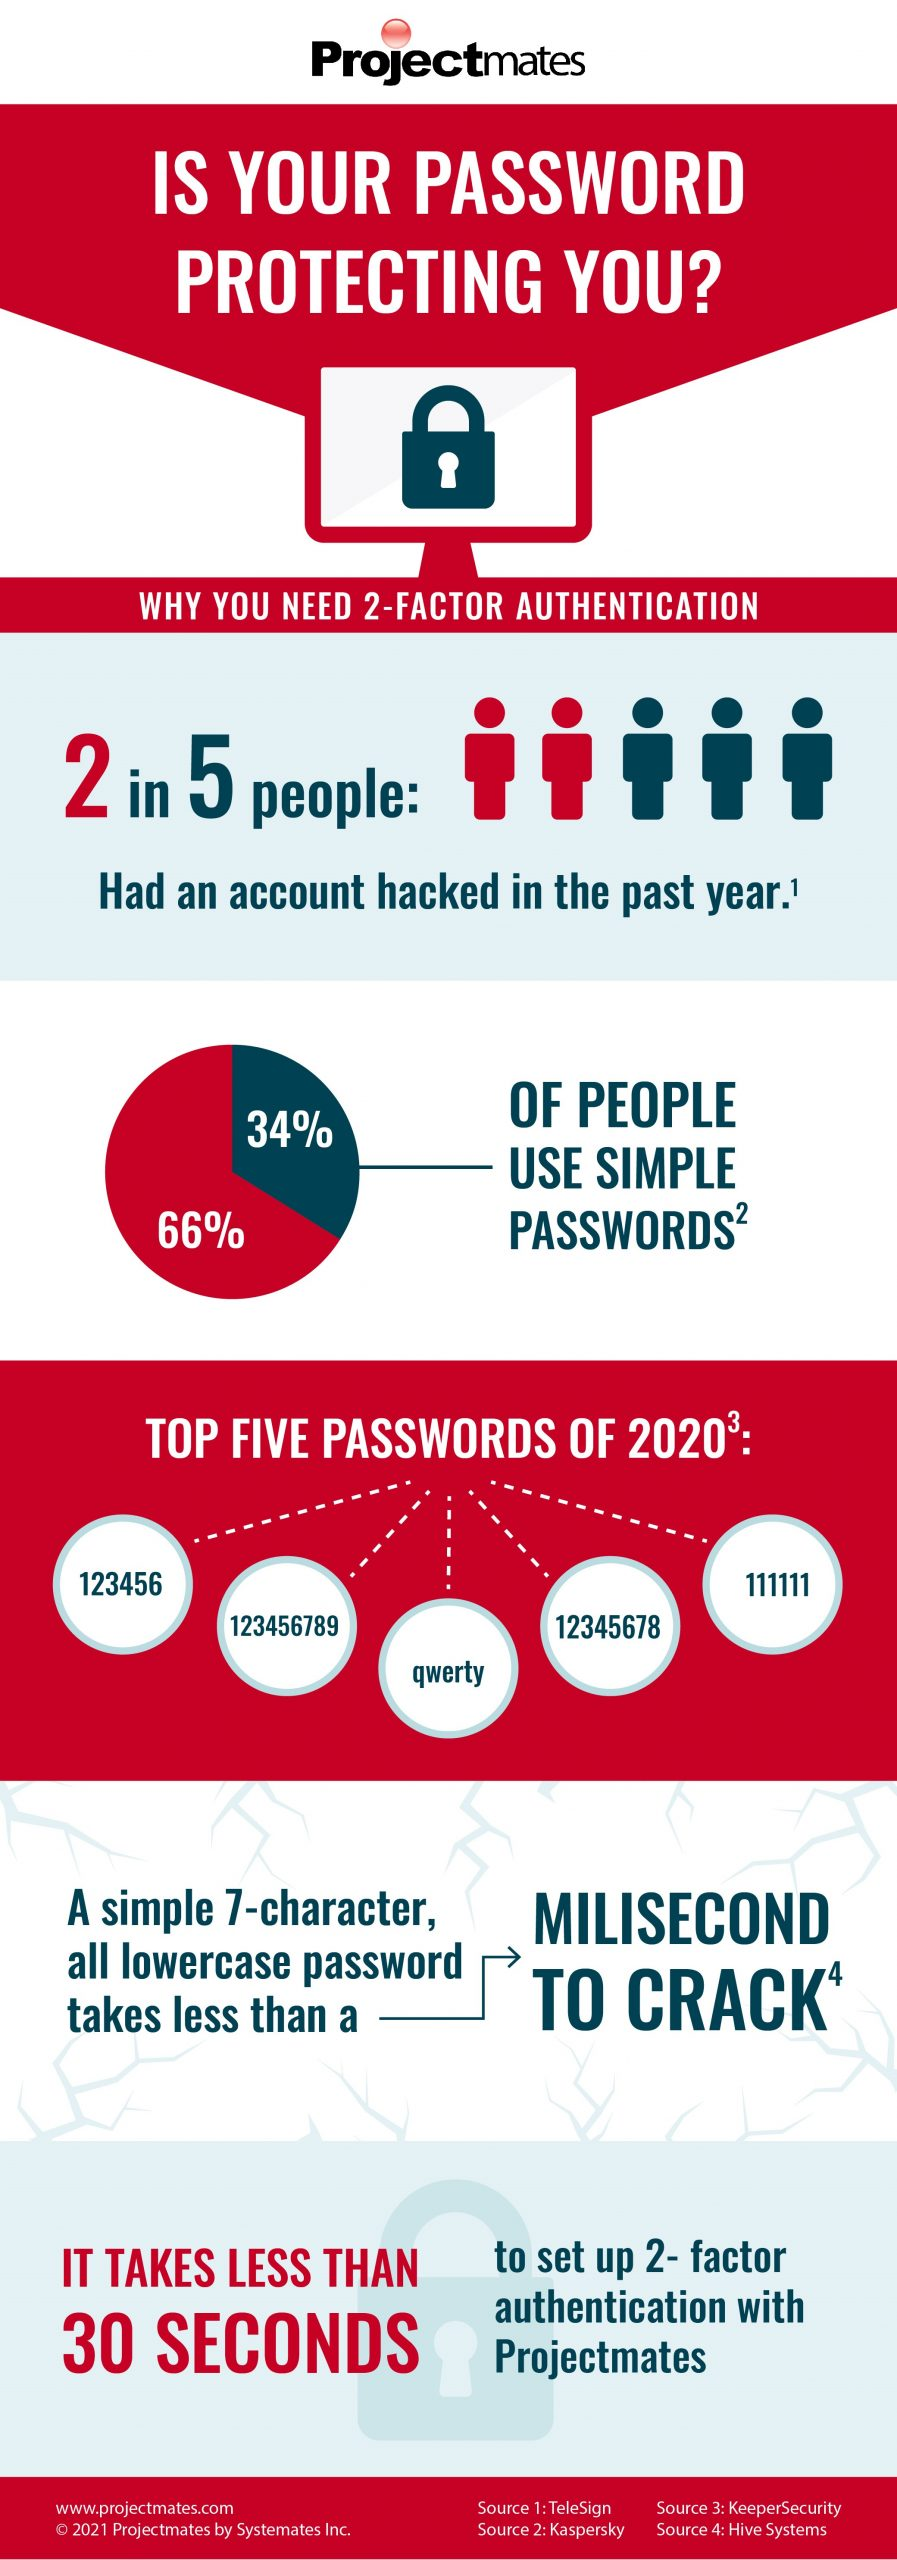 Infographic displaying facts on password hacking.